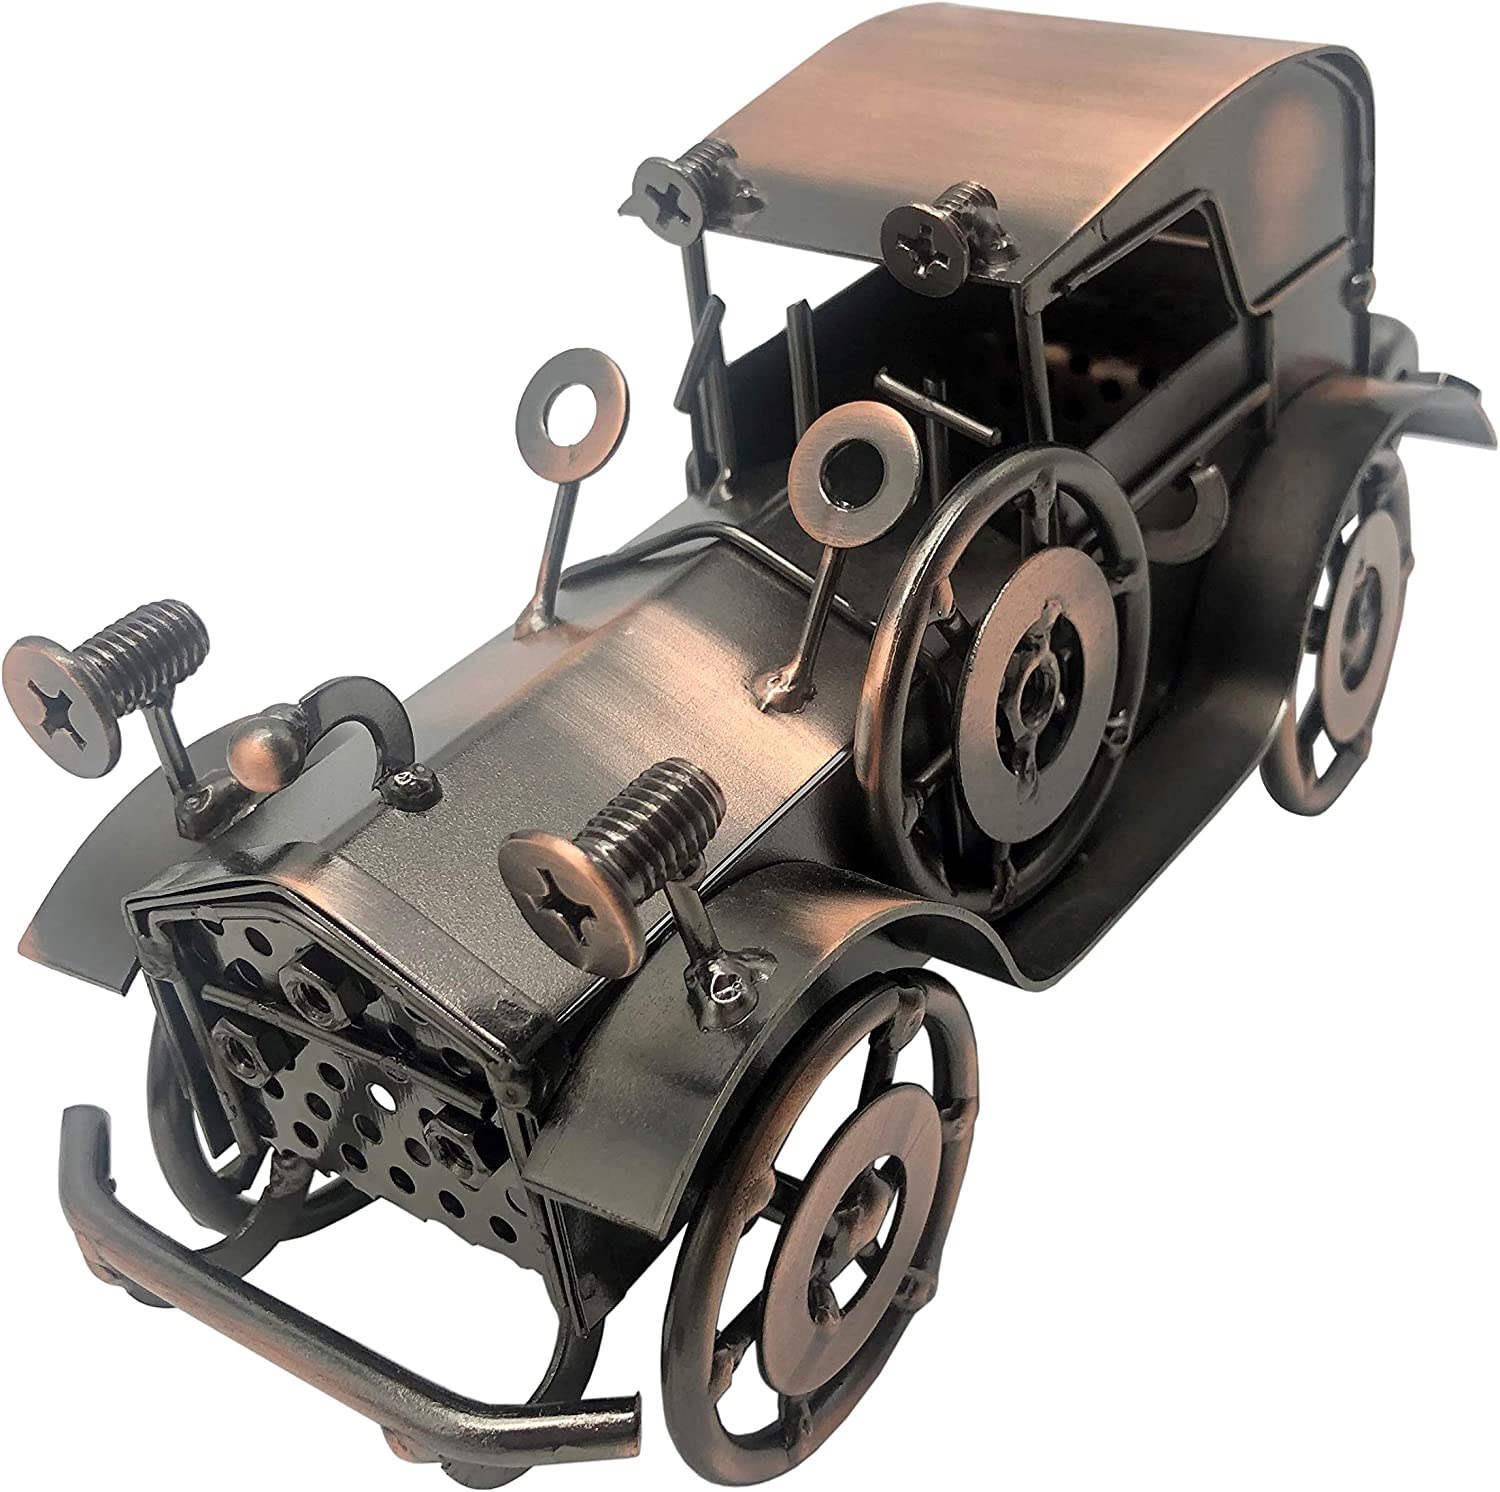 NYAIR Handcrafted Metal Antique Vintage Car Model Collectible Vehicle Toys for Bar or Home Decor Decoration